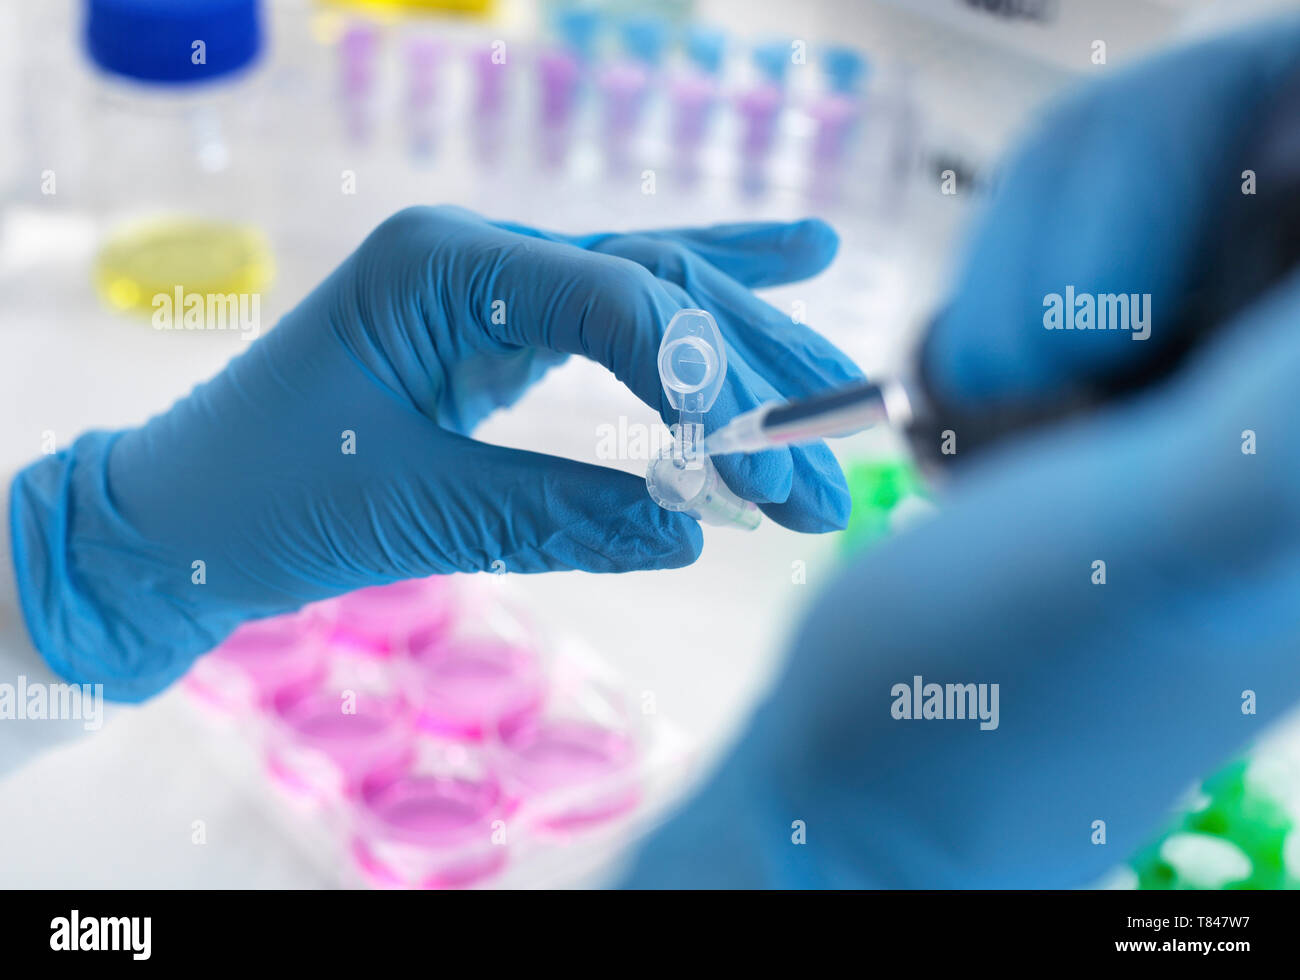 Biotechnology research, scientist pipetting sample into vial for analysis in laboratory, close up of hands - Stock Image